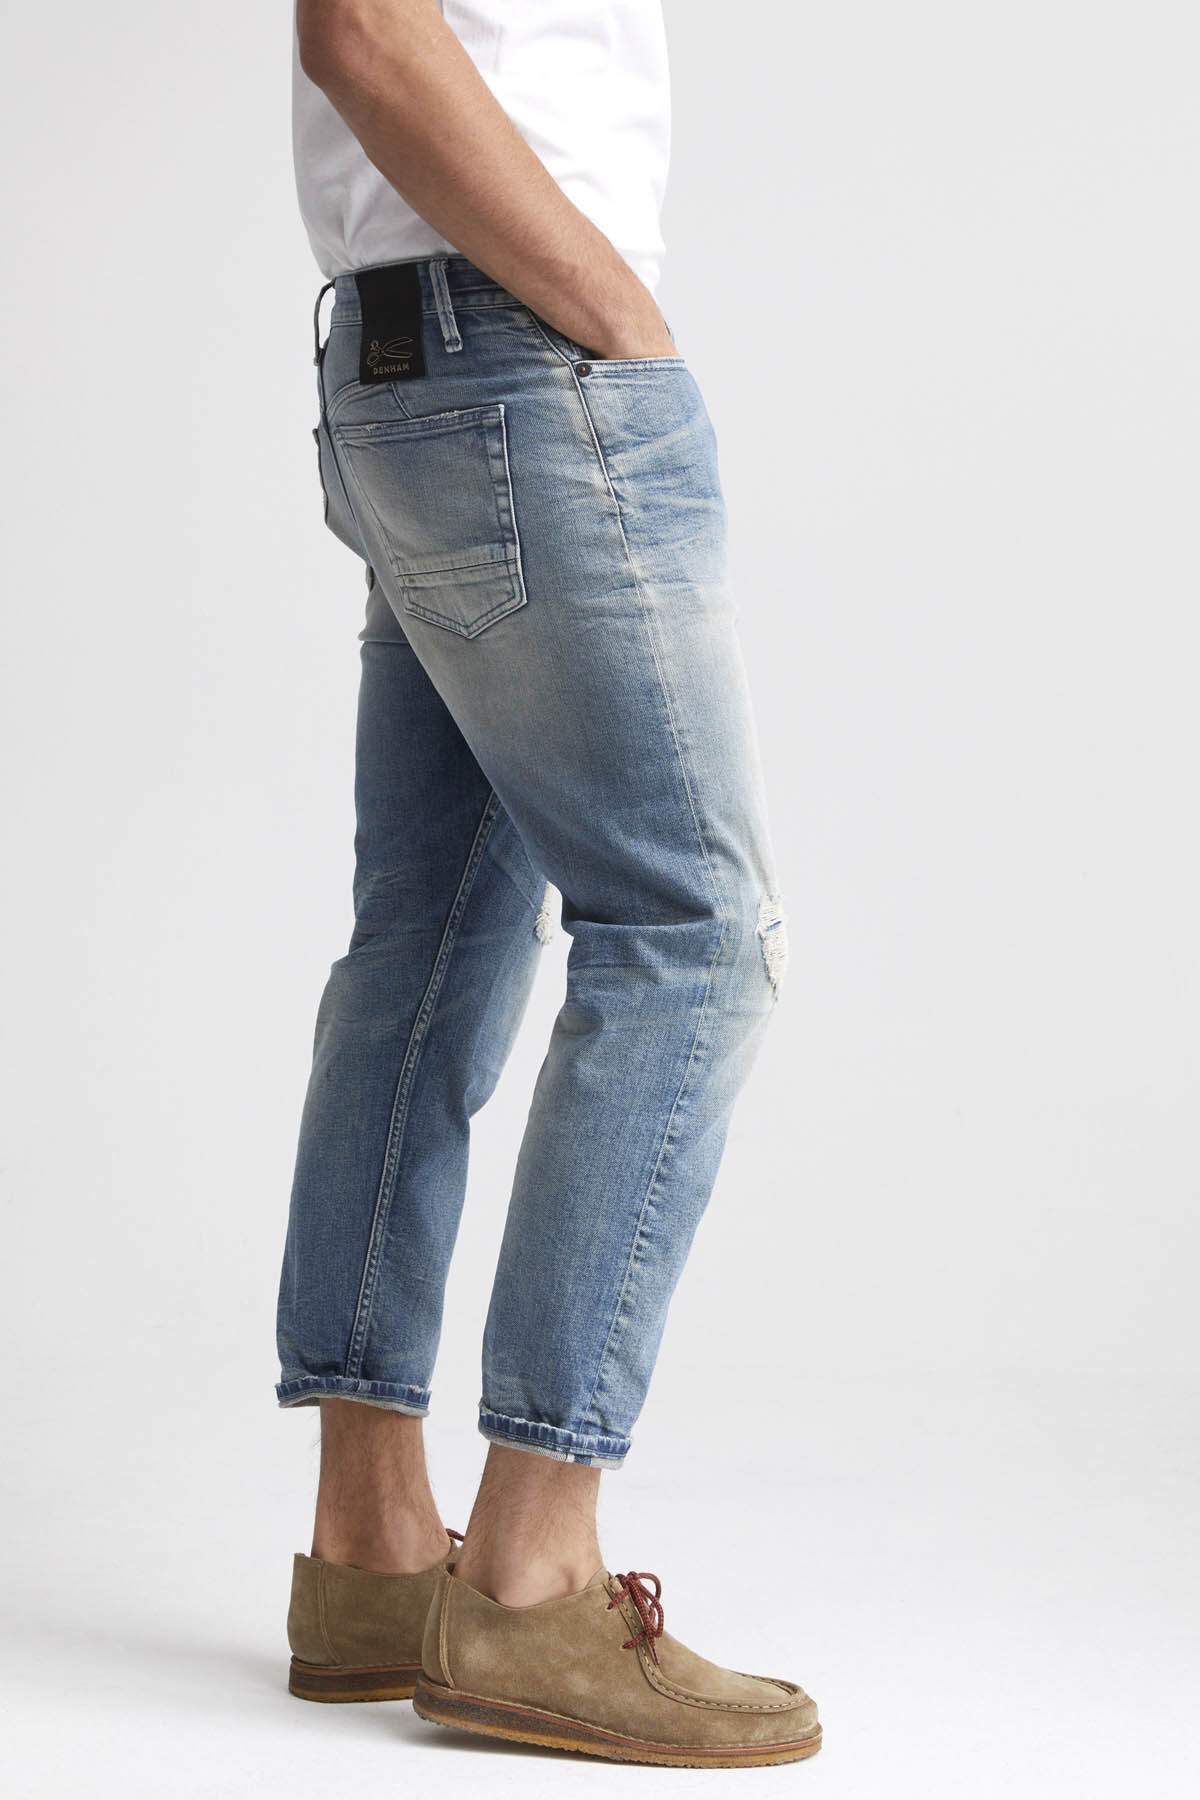 CROP Signature Selvedge Denim - Low Crotch, Cropped Fit